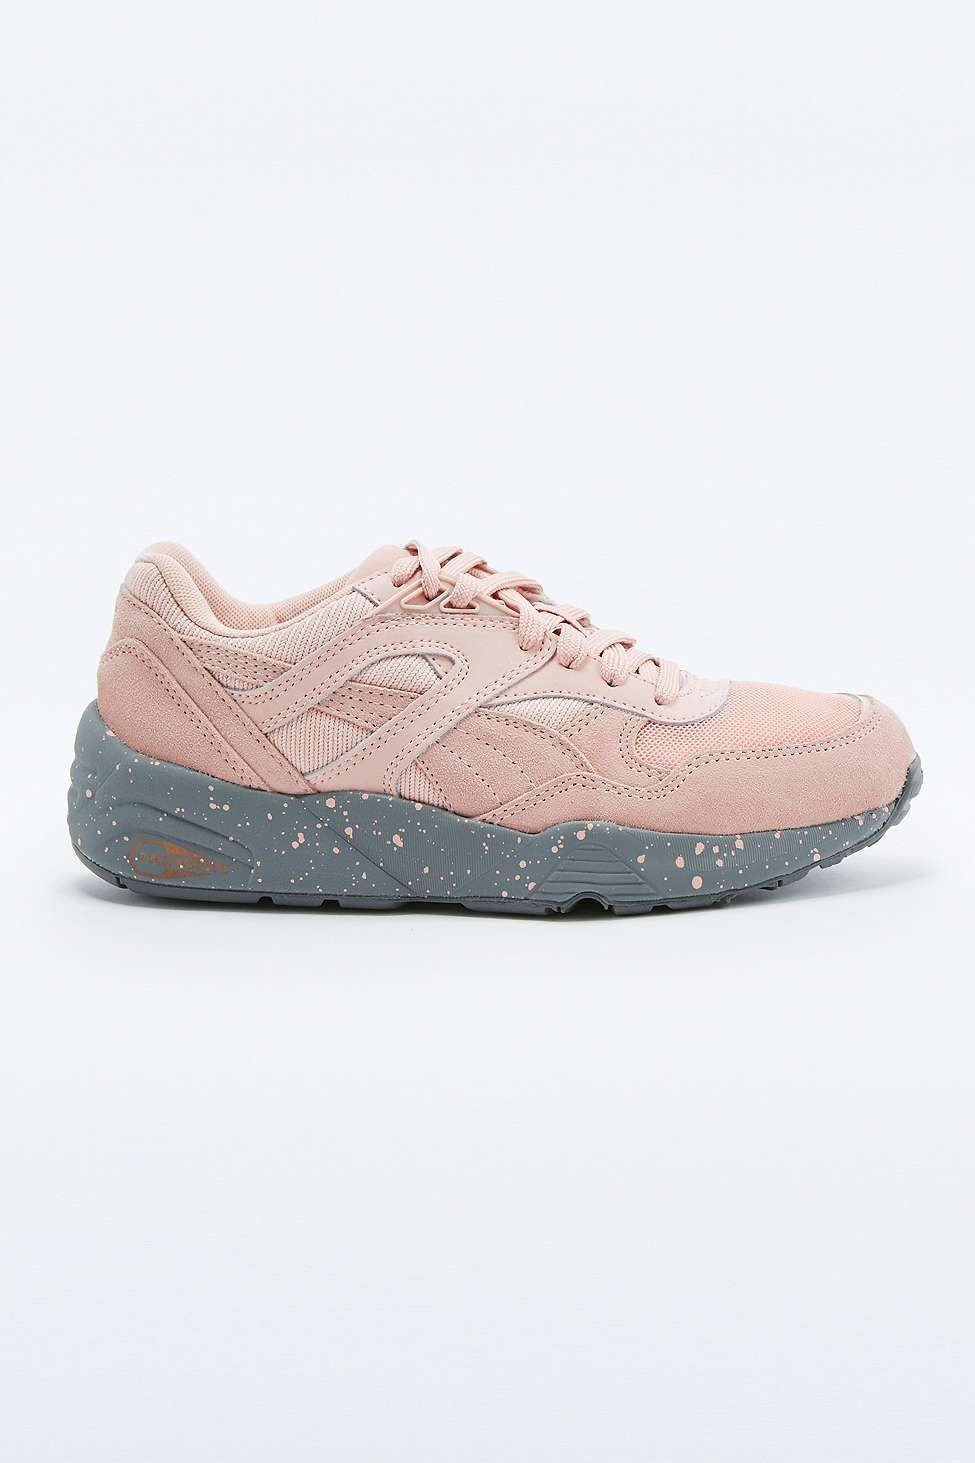 1593e979bf9 Puma Trinomic R698 Pink Trainers - Urban Outfitters Urban Outfitters